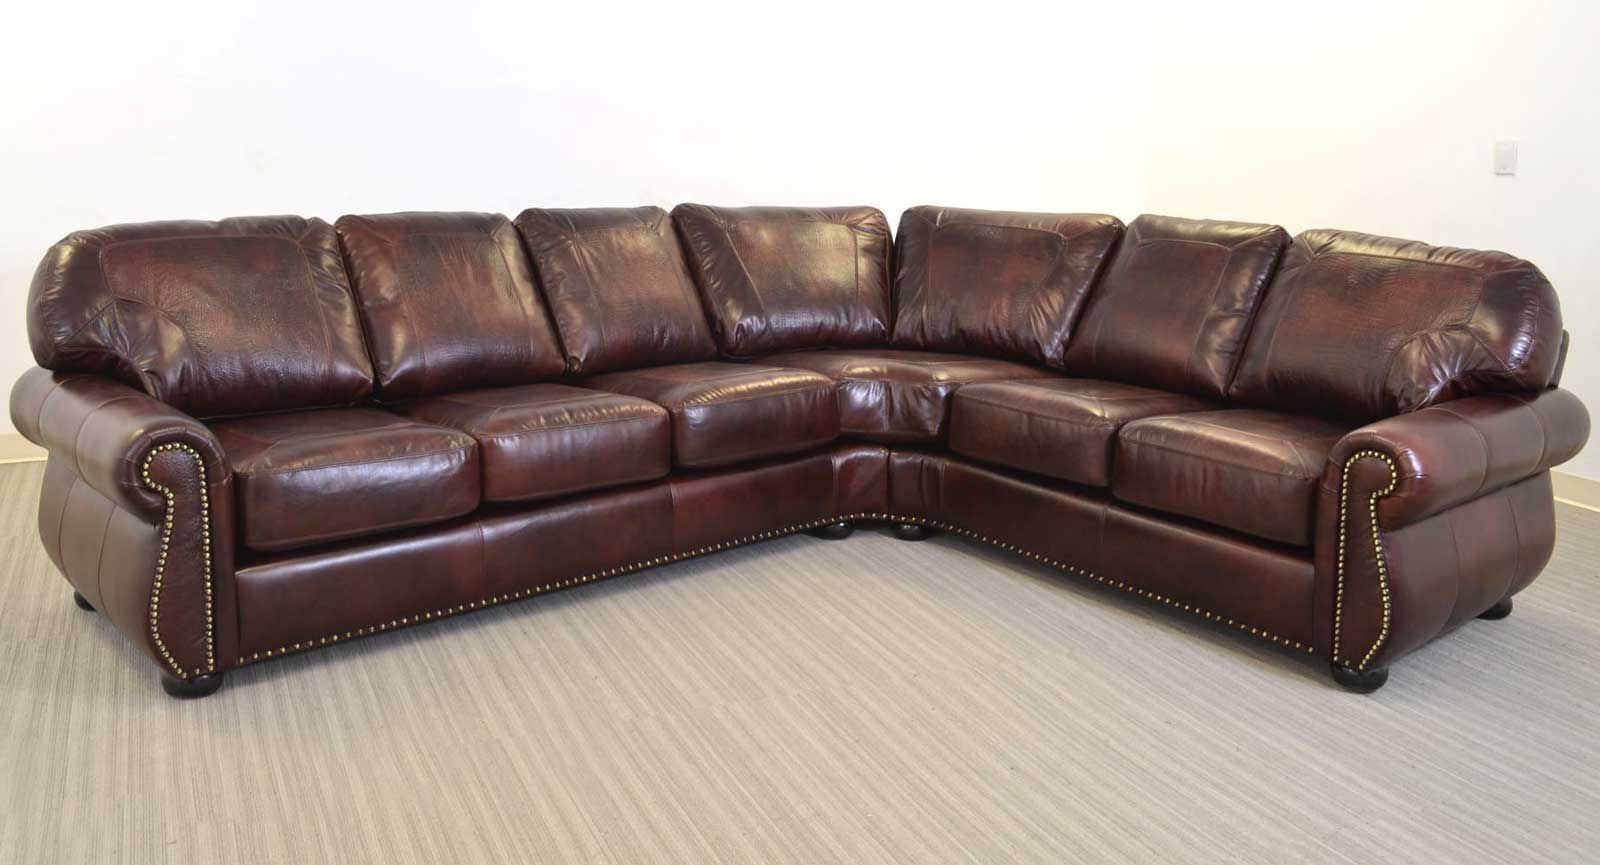 Made in the usa the addison leather sofa vintage leather furniture made in the usa manufacturing